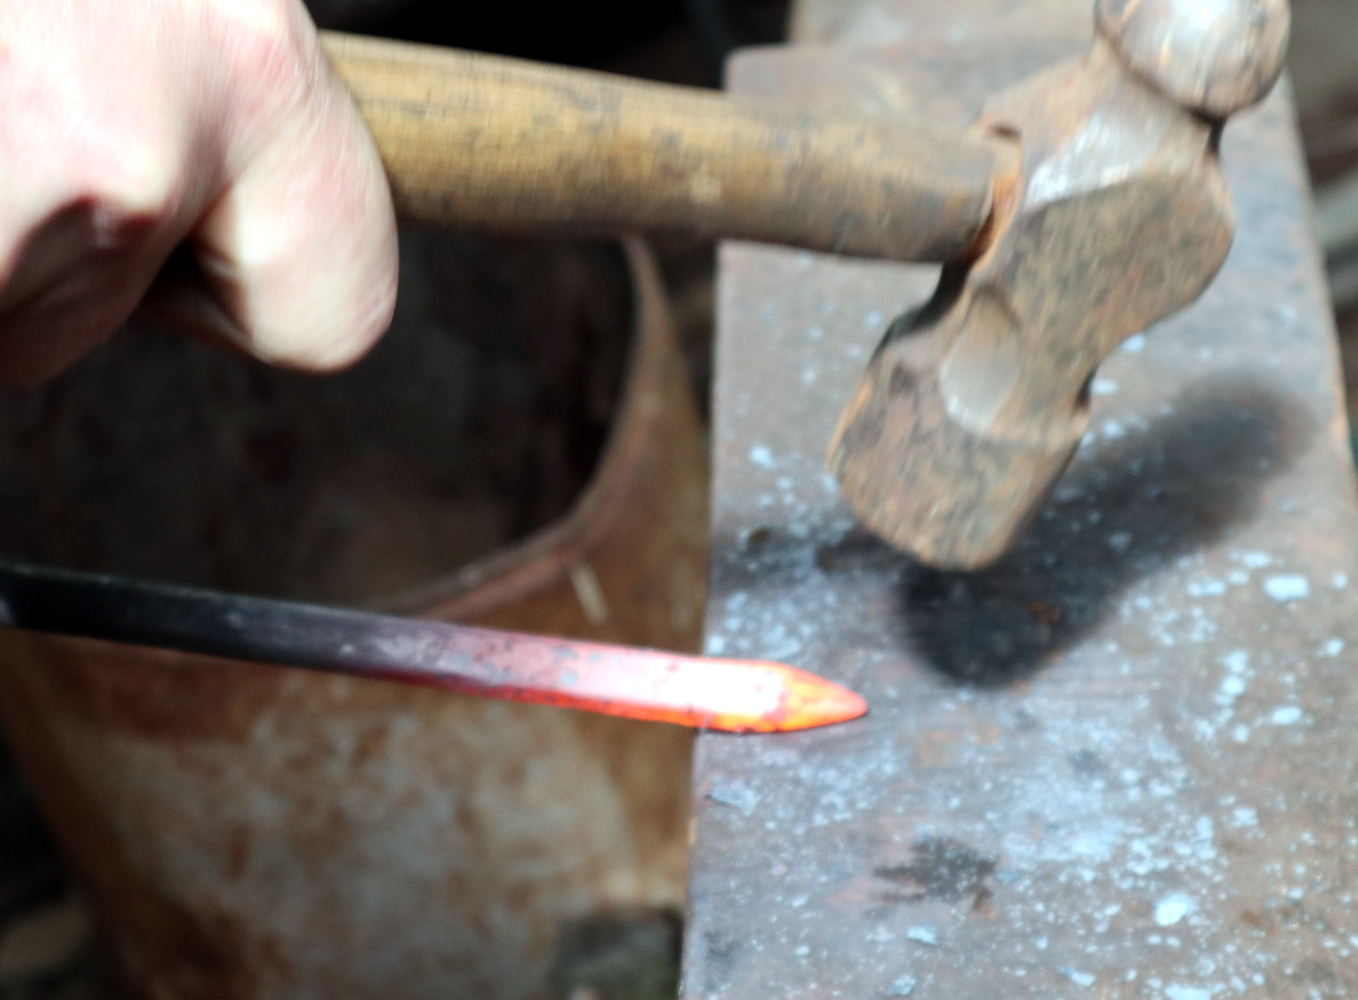 Blacksmithing For The Uninitiated: Your First Time At The